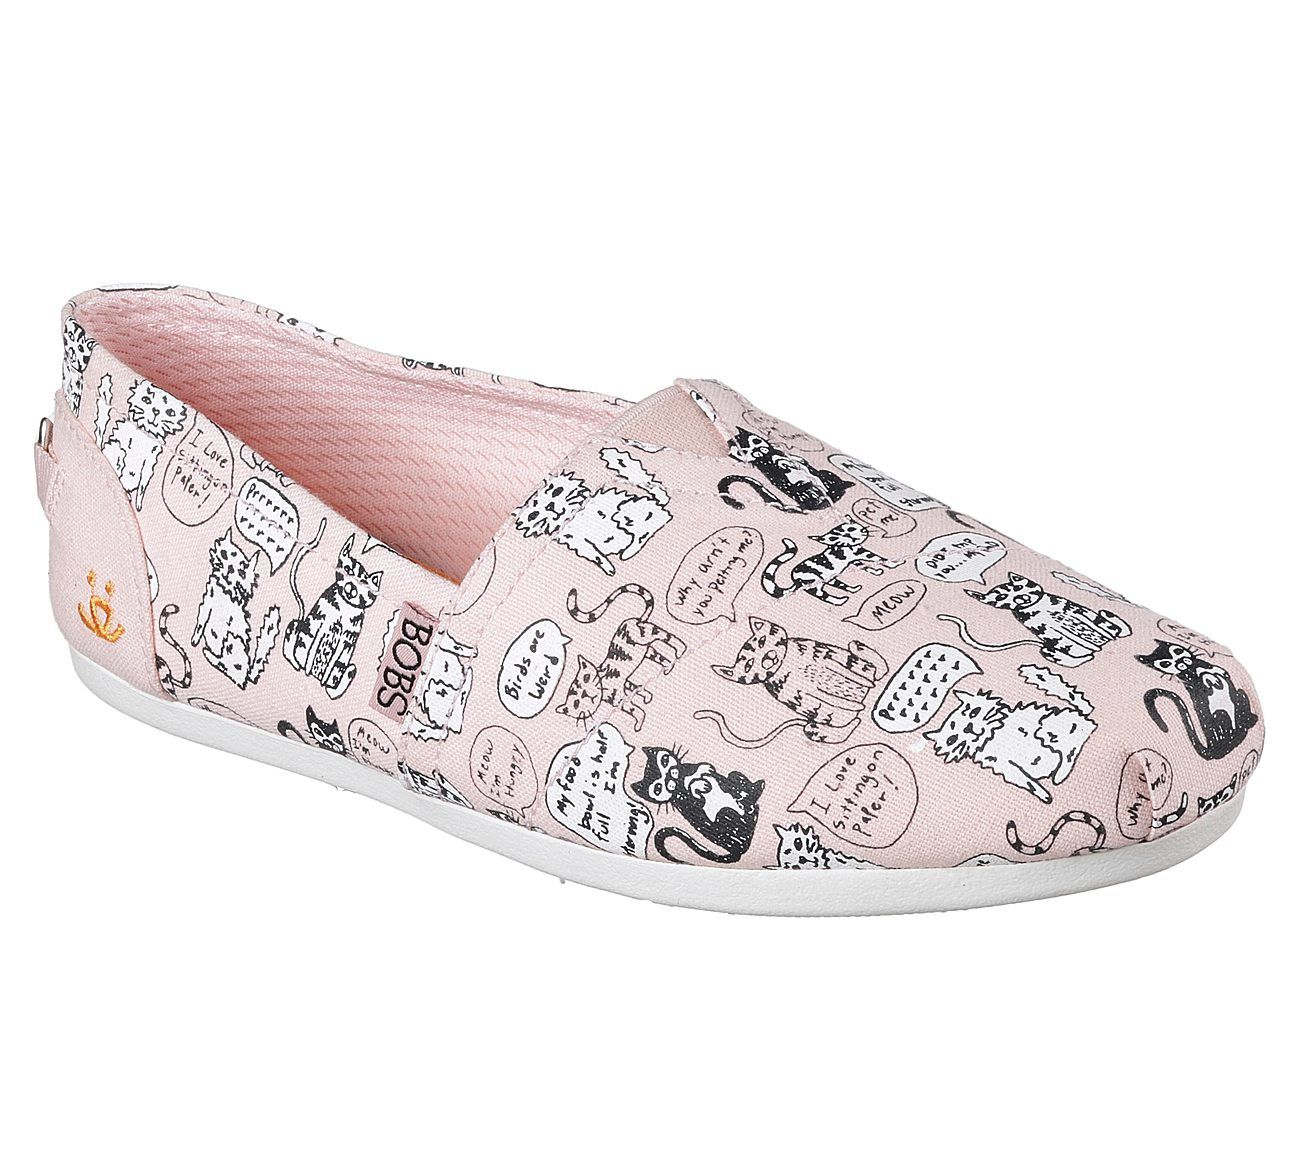 0423c6688d3 Cats get their say in fun style and comfort with the Skechers BOBS for Cats  Bobs